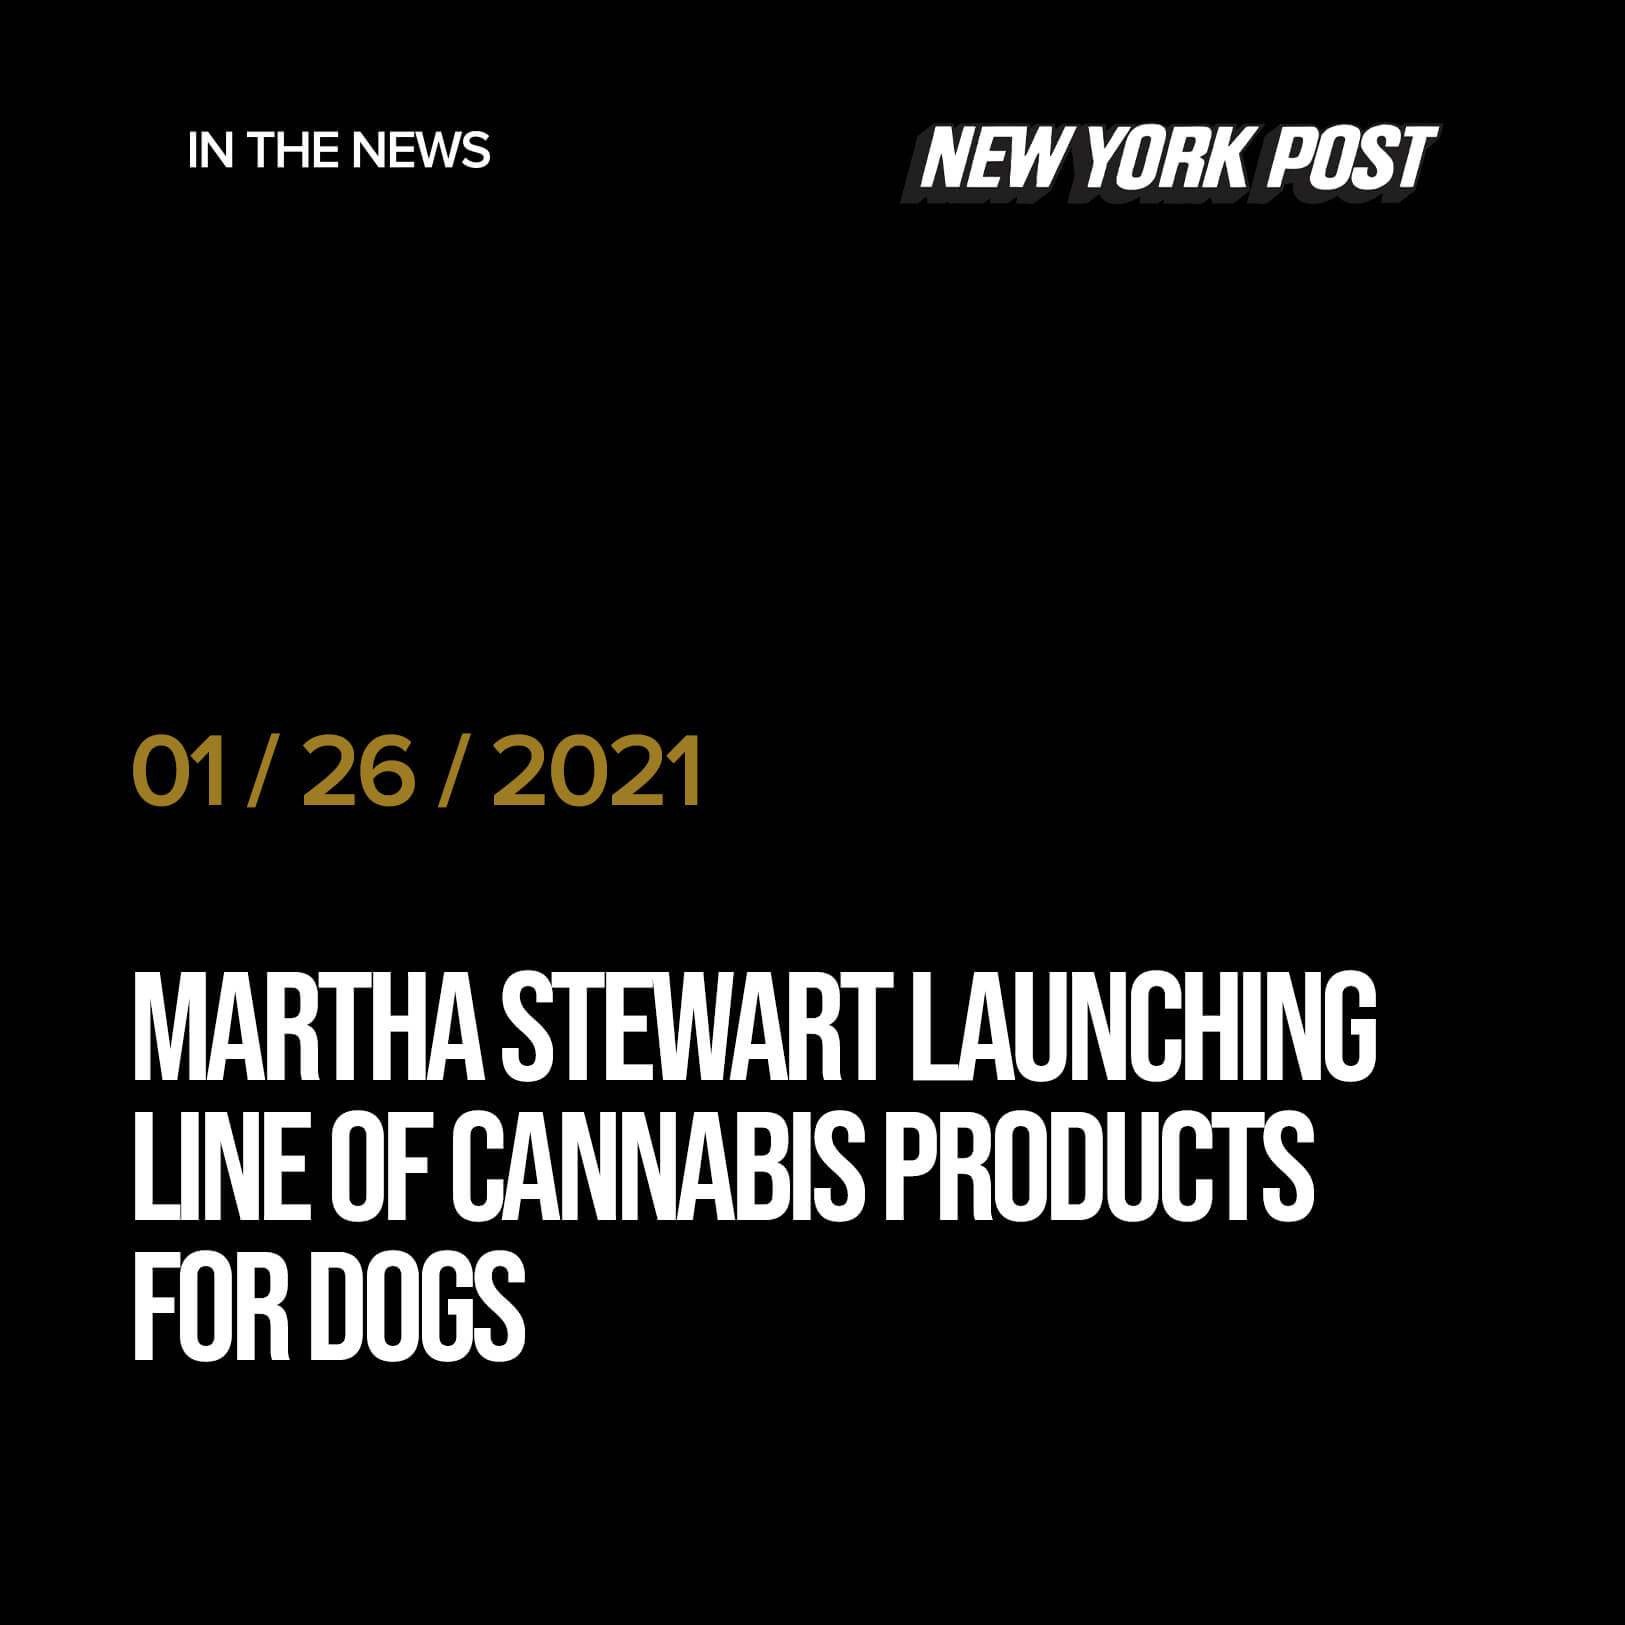 Martha Stewart launching line of cannabis products for dogs